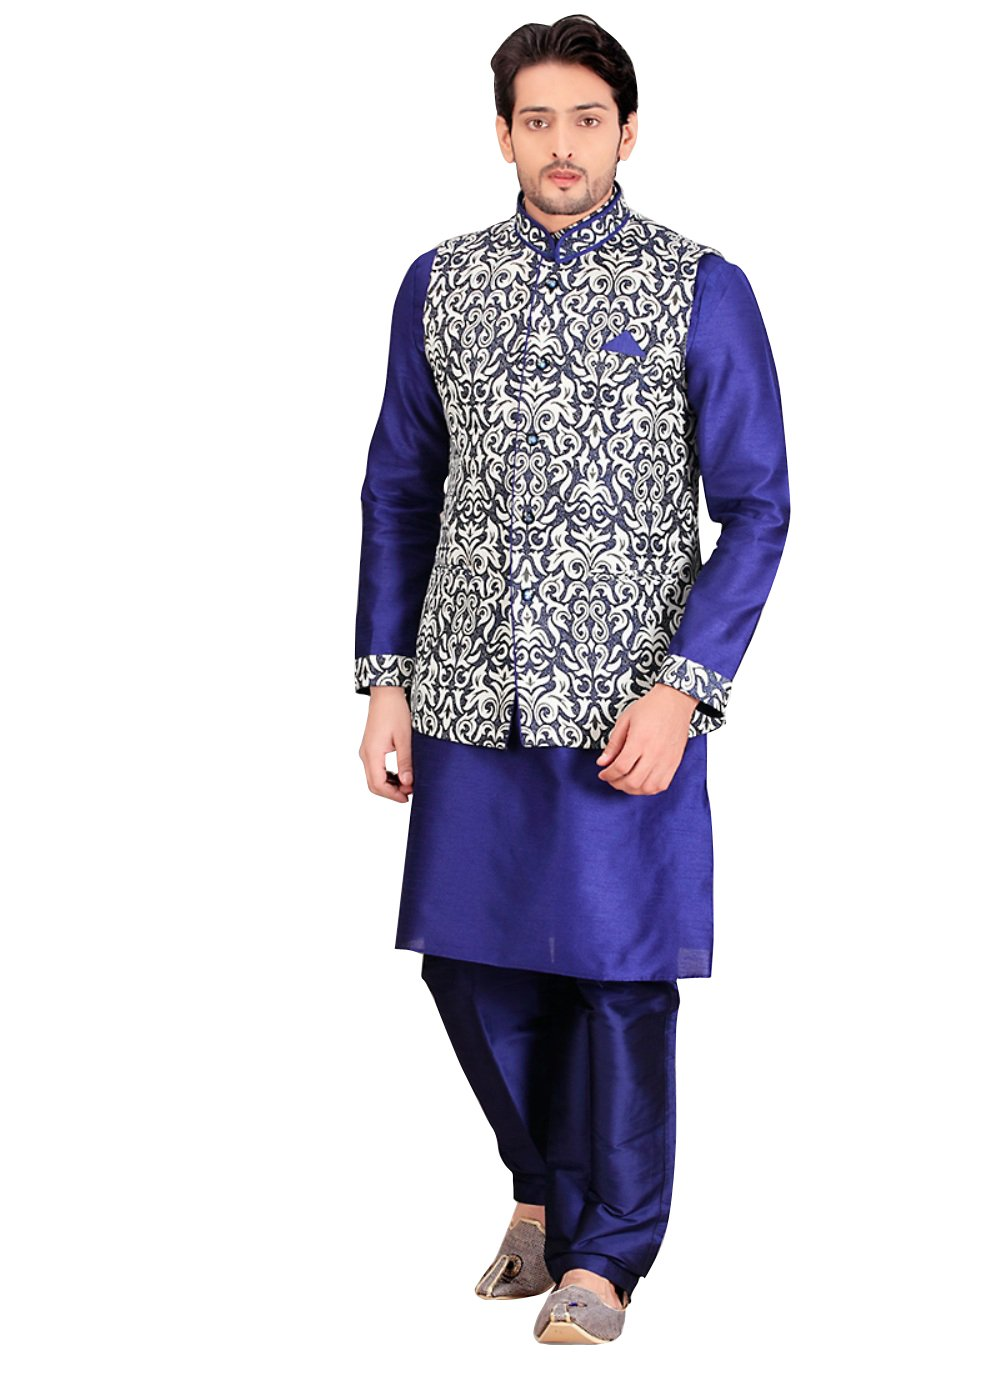 Blue Dupioni Raw Silk Indian Wedding Indo-Western Sherwani For Men